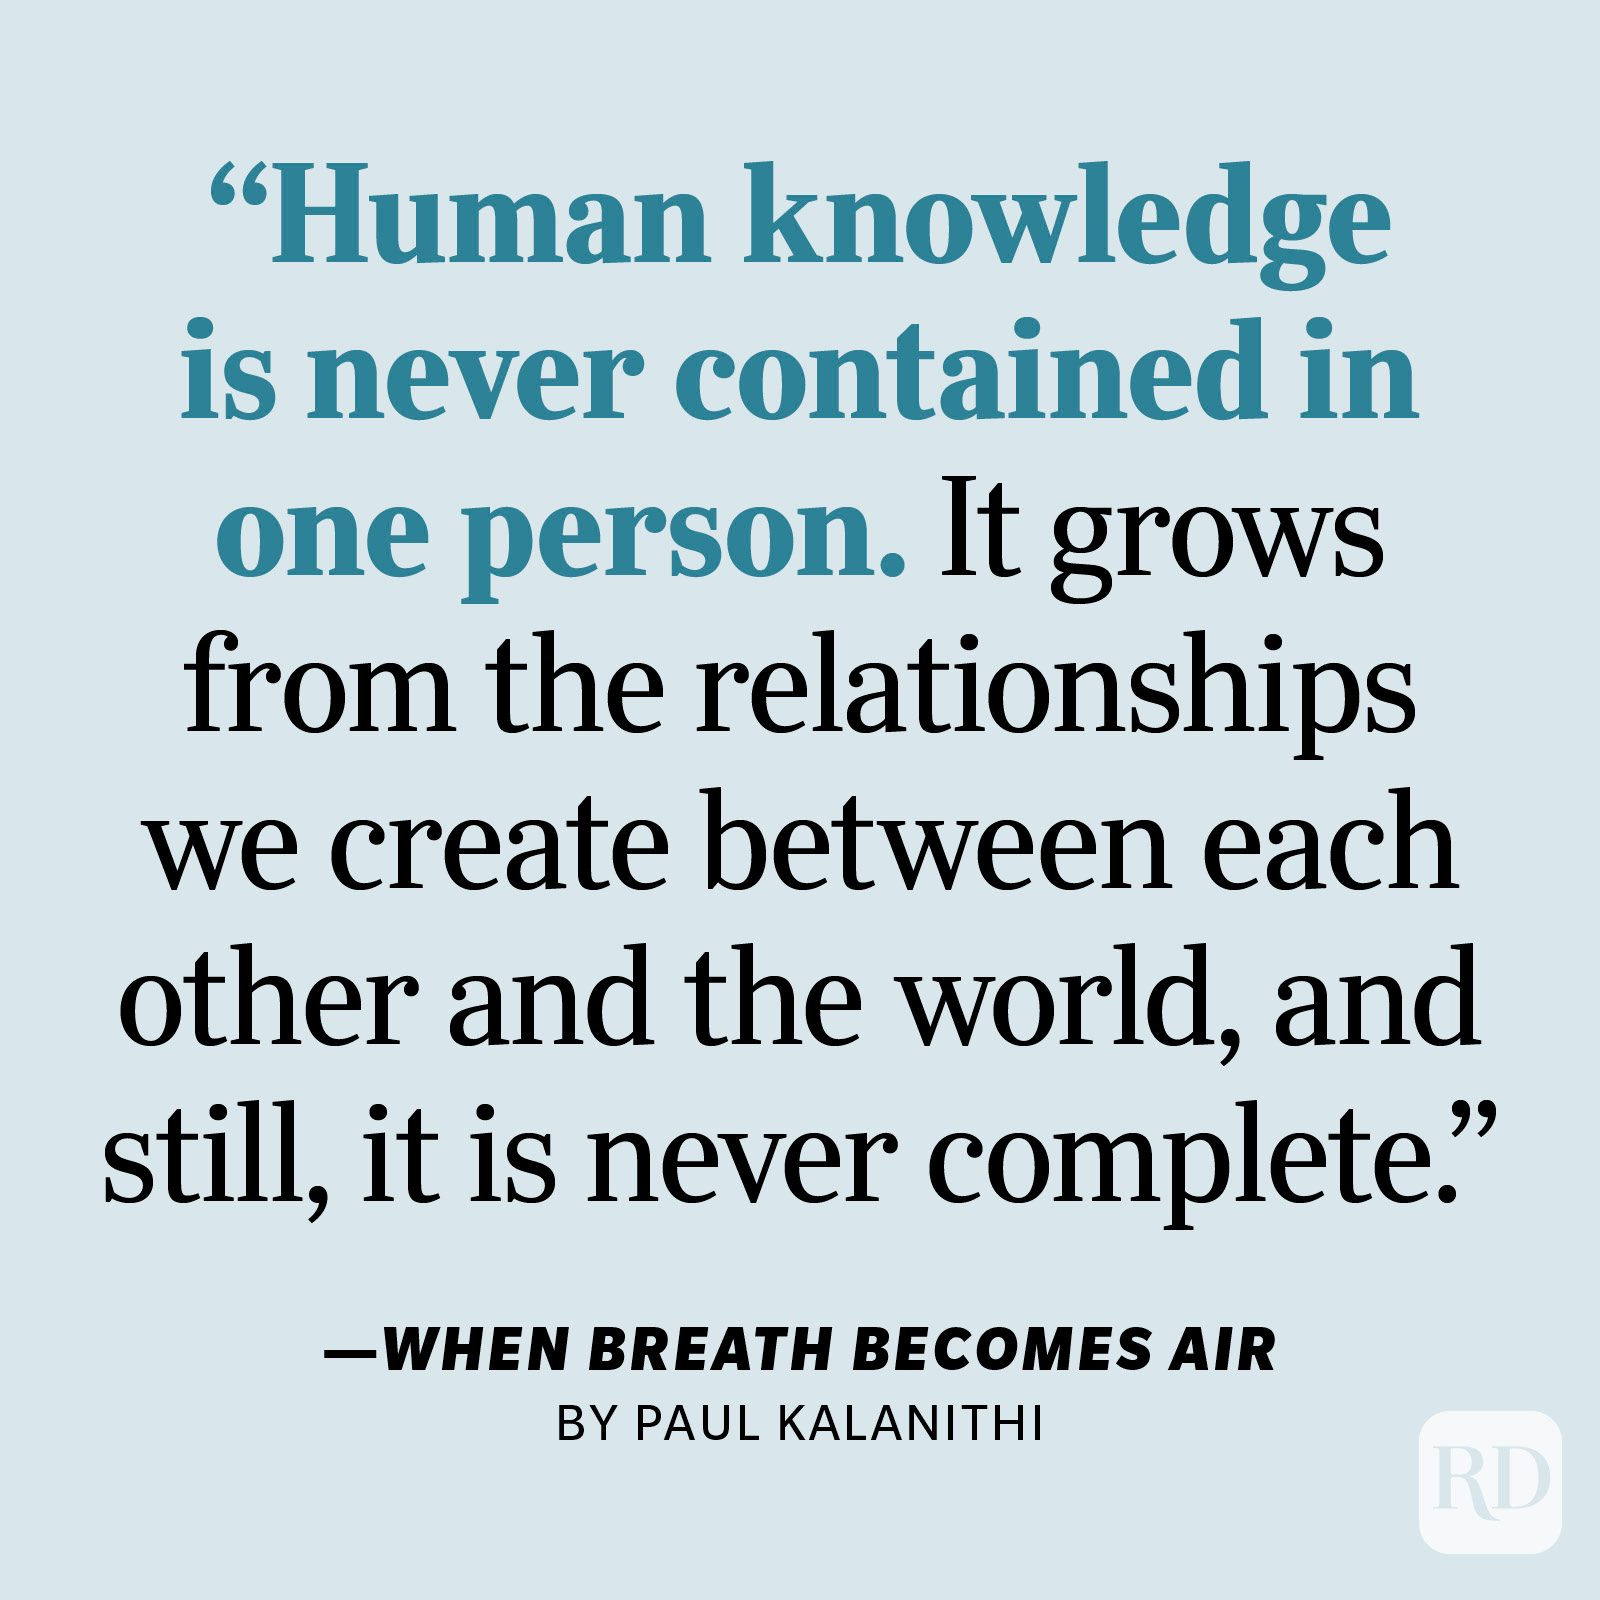 """When Breath Becomes Air by Paul Kalanithi     """"It cannot be doubted that each of us can only see part of the picture. The doctor sees one, the patient another, the engineer a third, the economist a fourth, the pearl diver a fifth, the alcoholic a sixth, the cable guy a seventh, the sheep farmer an eighth, the Indian beggar a ninth, the pastor a tenth. Human knowledge is never contained in one person. It grows from the relationships we create between each other and the world, and still, it is never complete."""""""